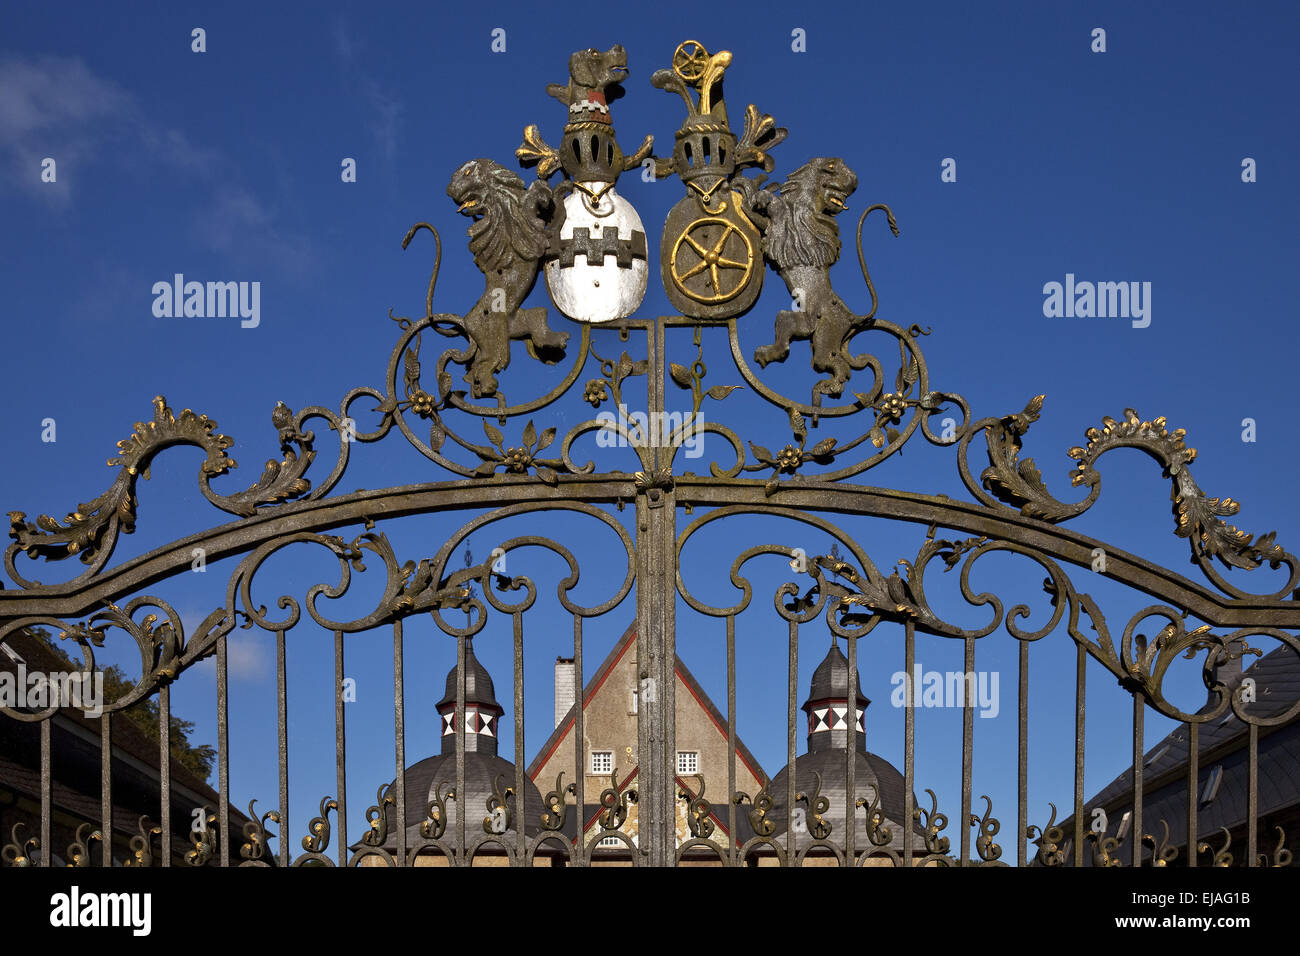 Entrance gate, Neuenhof castle, Luedenscheid - Stock Image